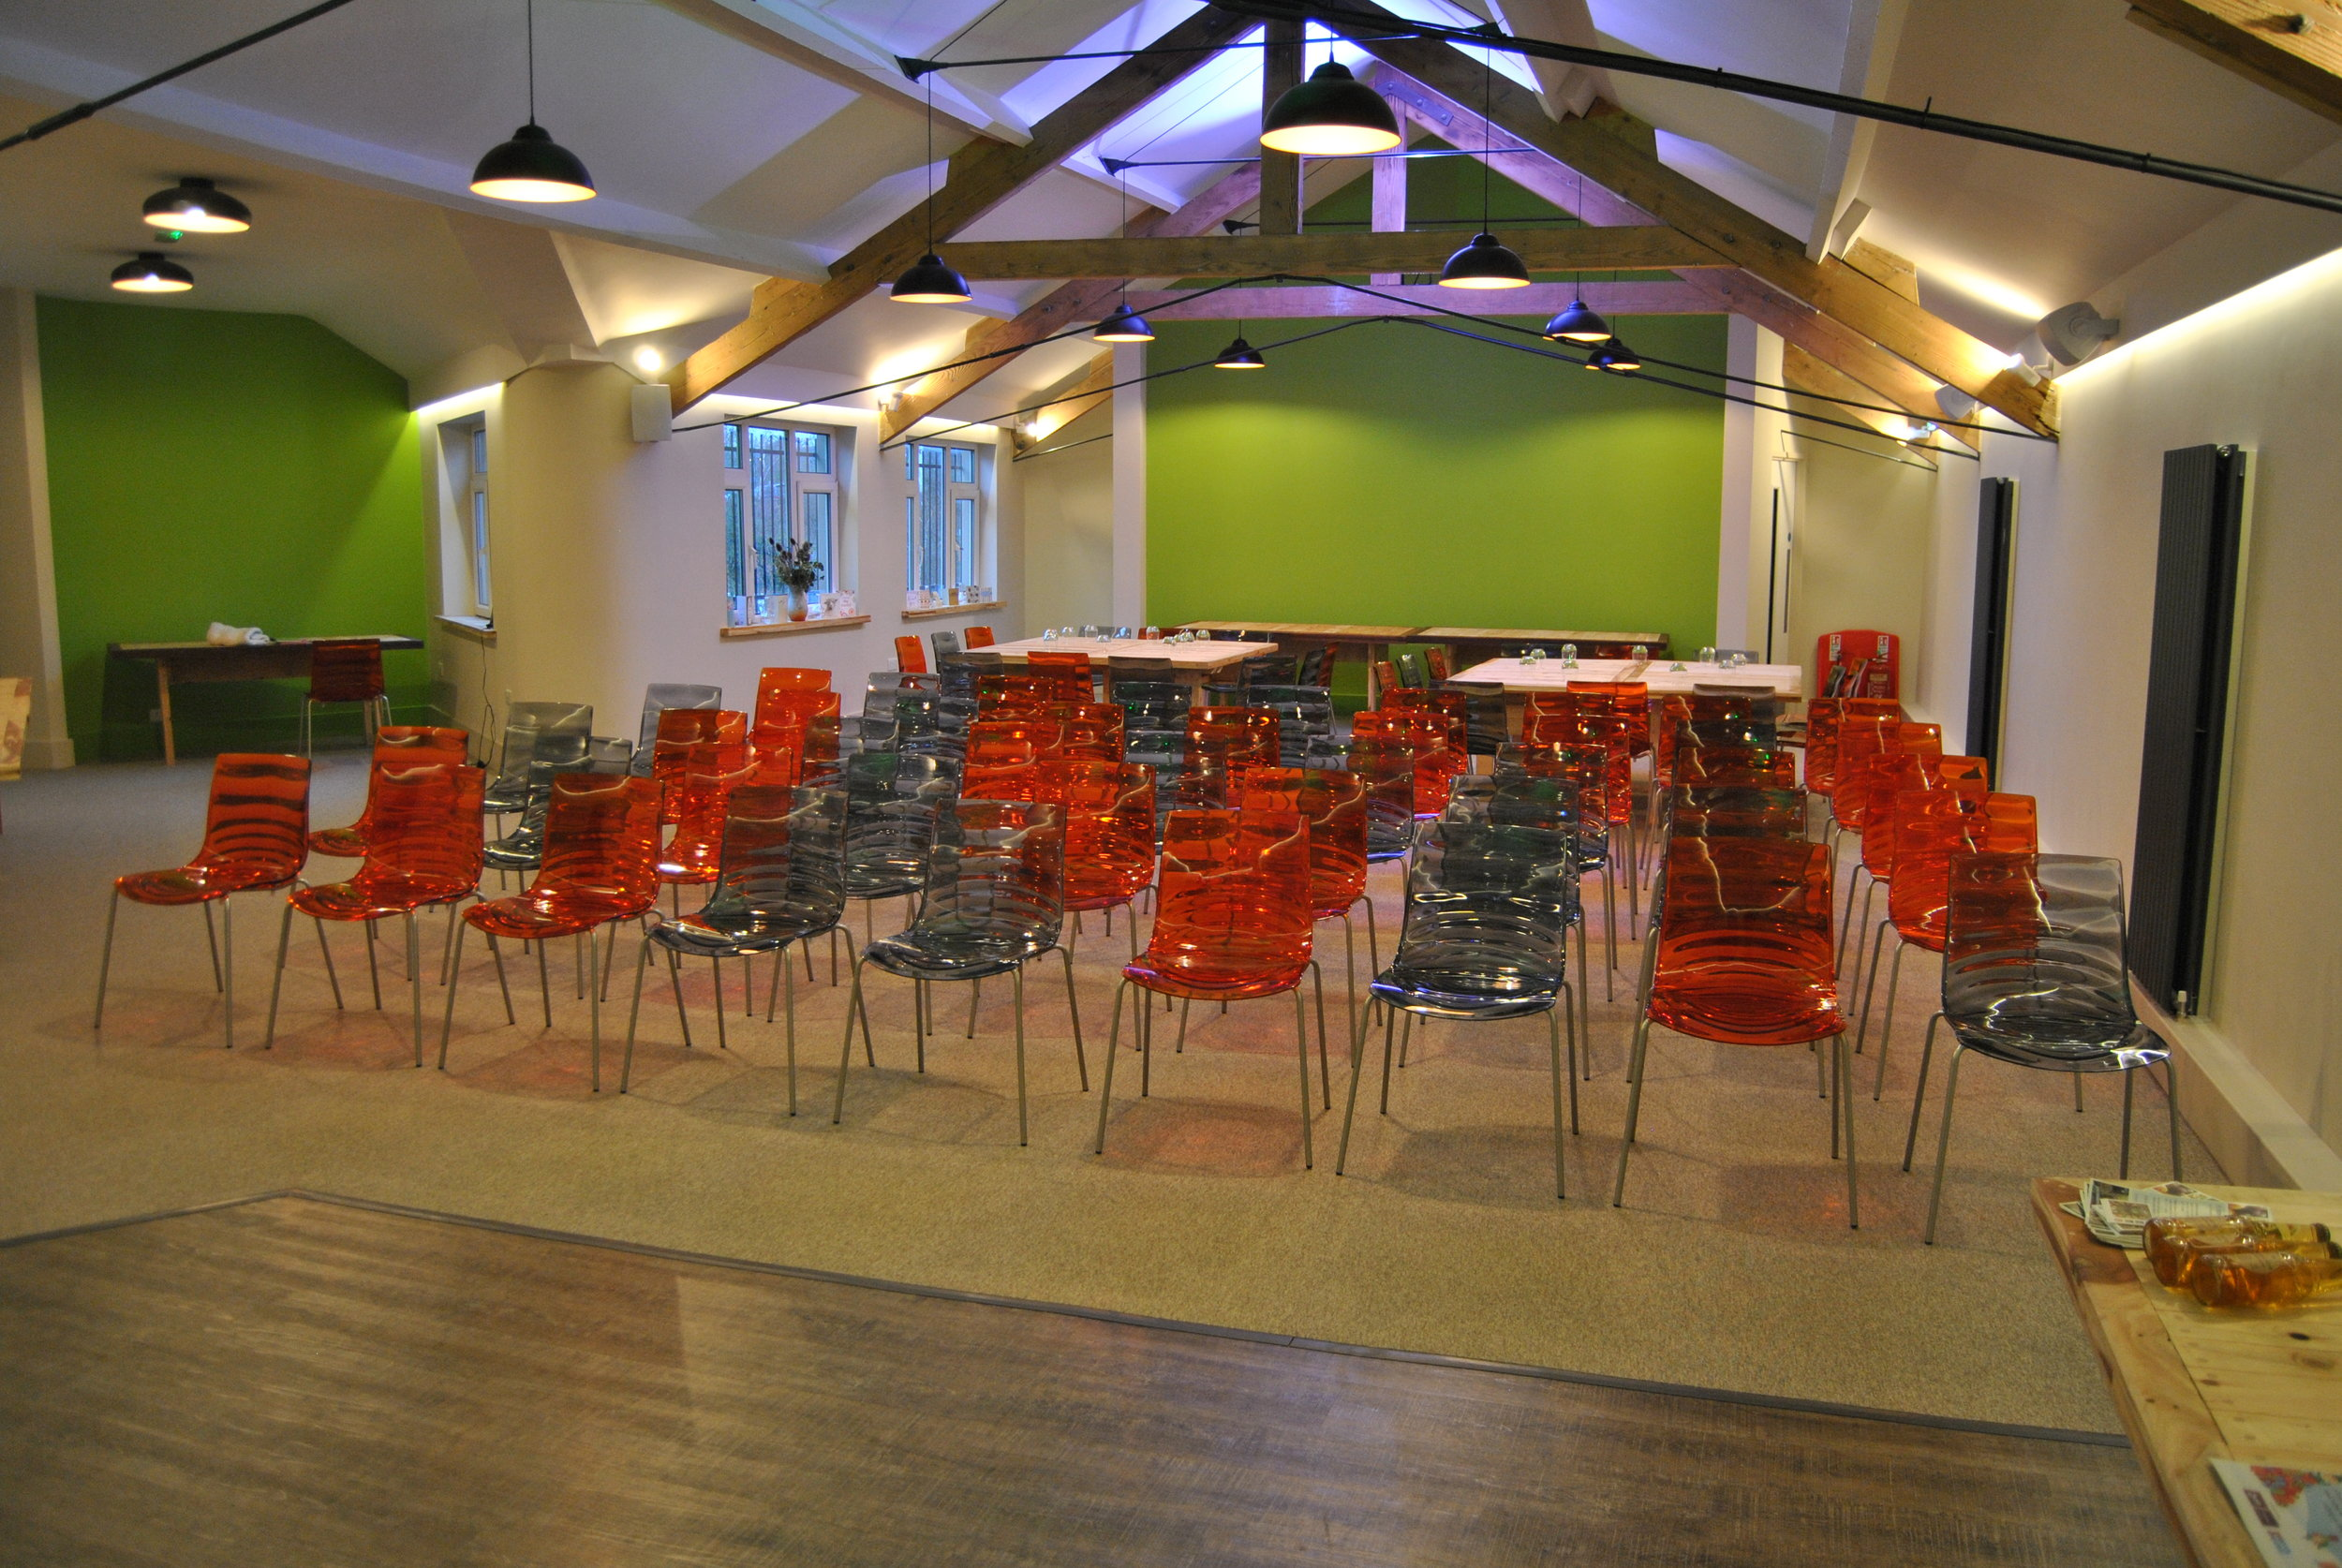 Theatre style room layout for a conference